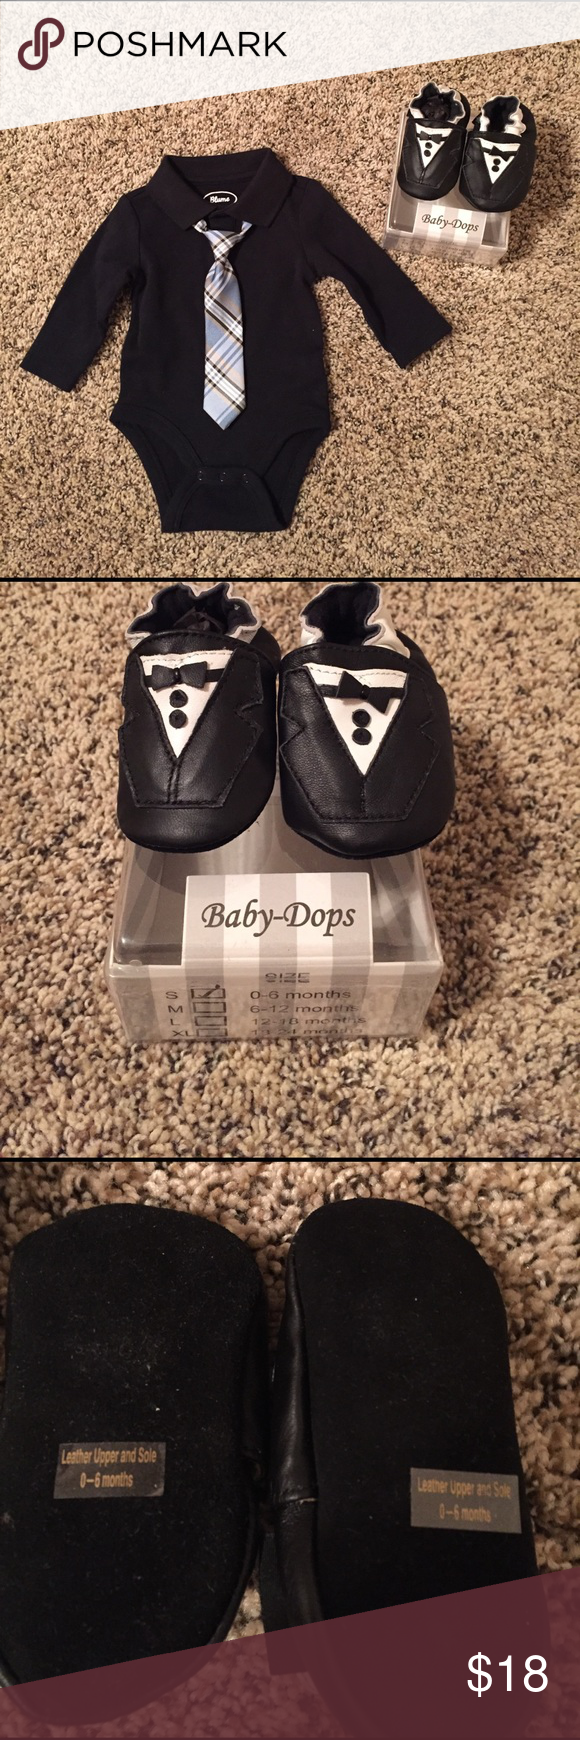 Bundle-tuxedo shoes and onesie with tie Black and white leather tuxedo slip on shoes, size 0-6 months. Never worn; new in box. Dark navy collared onesie with plaid tie, size 3 months. NWOT; never worn. Other